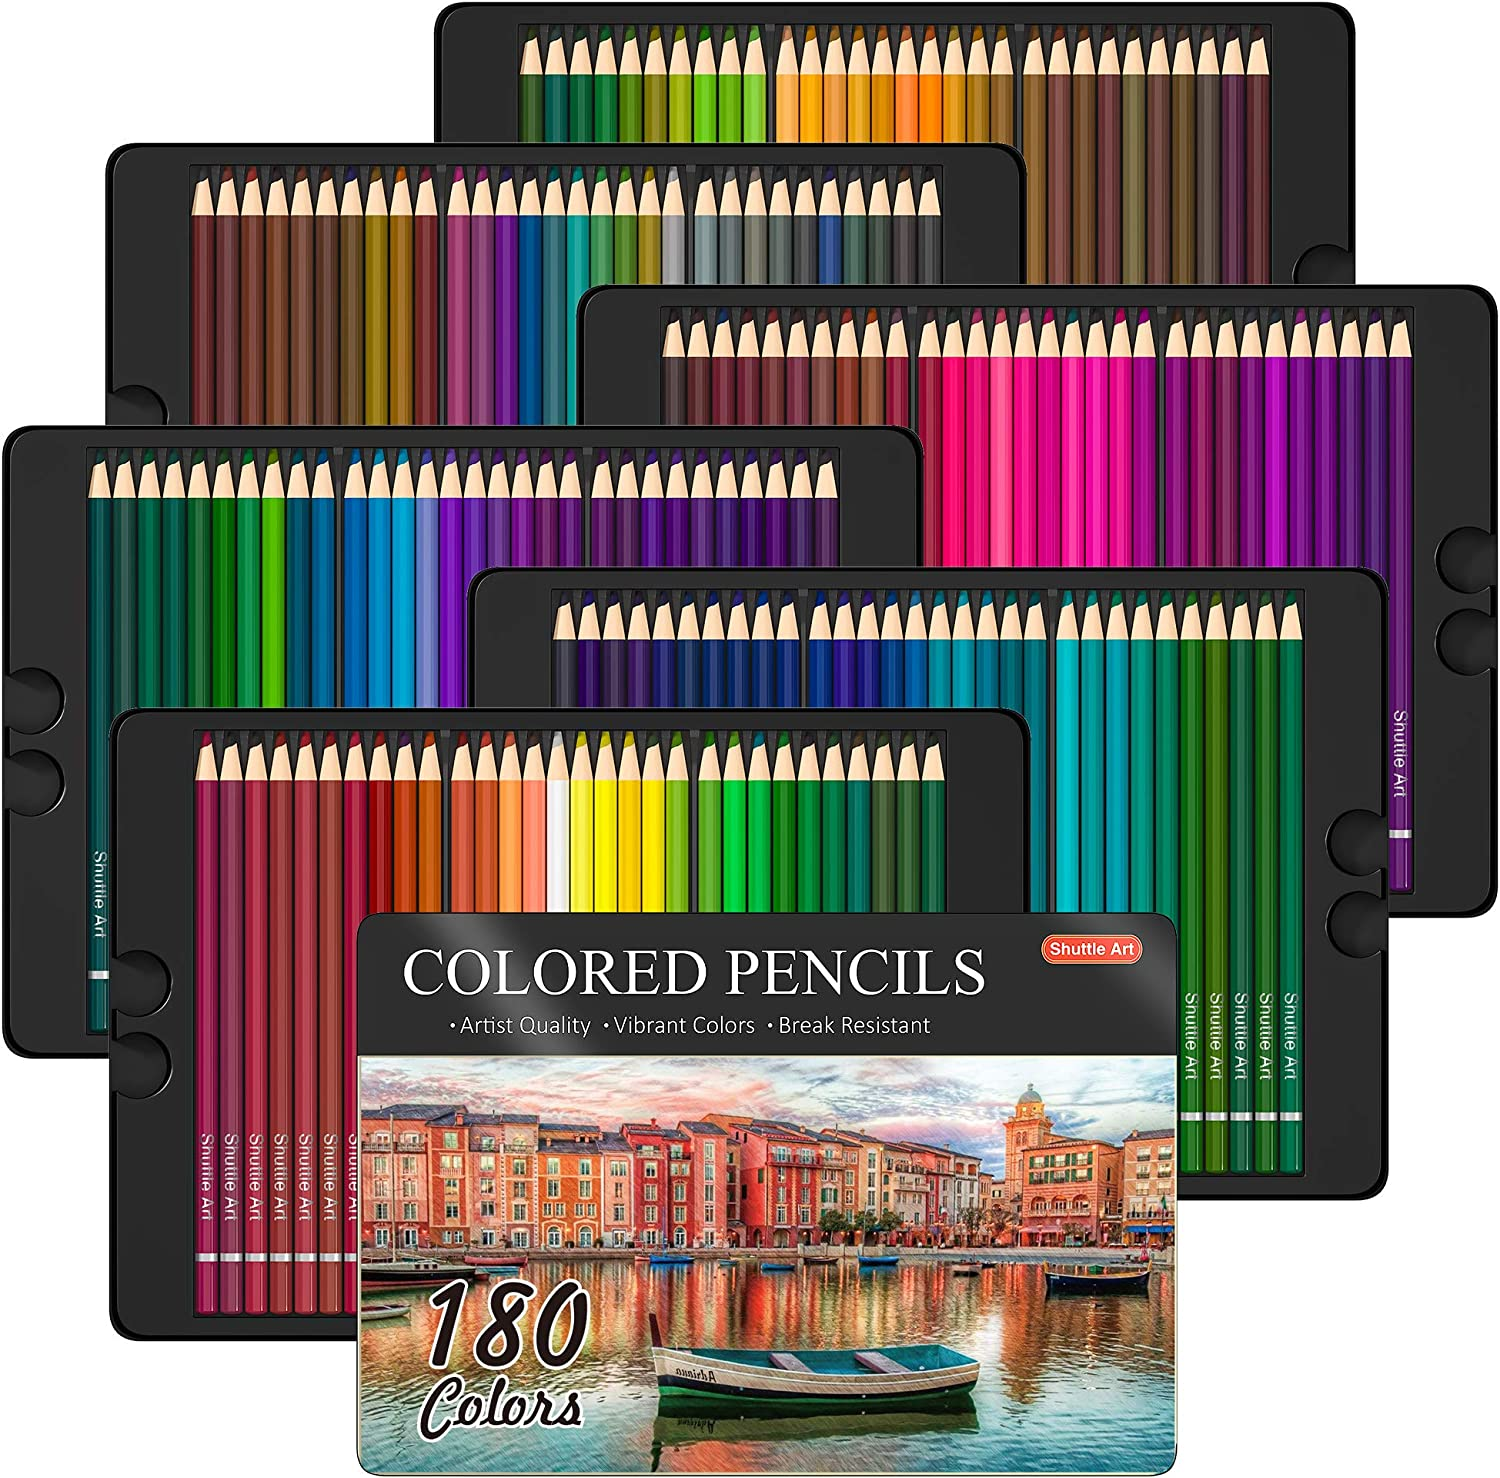 180 Colored Pencils, Shuttle Art Soft Core Coloring Pencils Set with 4 Sharpeners, Professional Color Pencils for Artists Kids Adults Coloring Sketching and Drawing